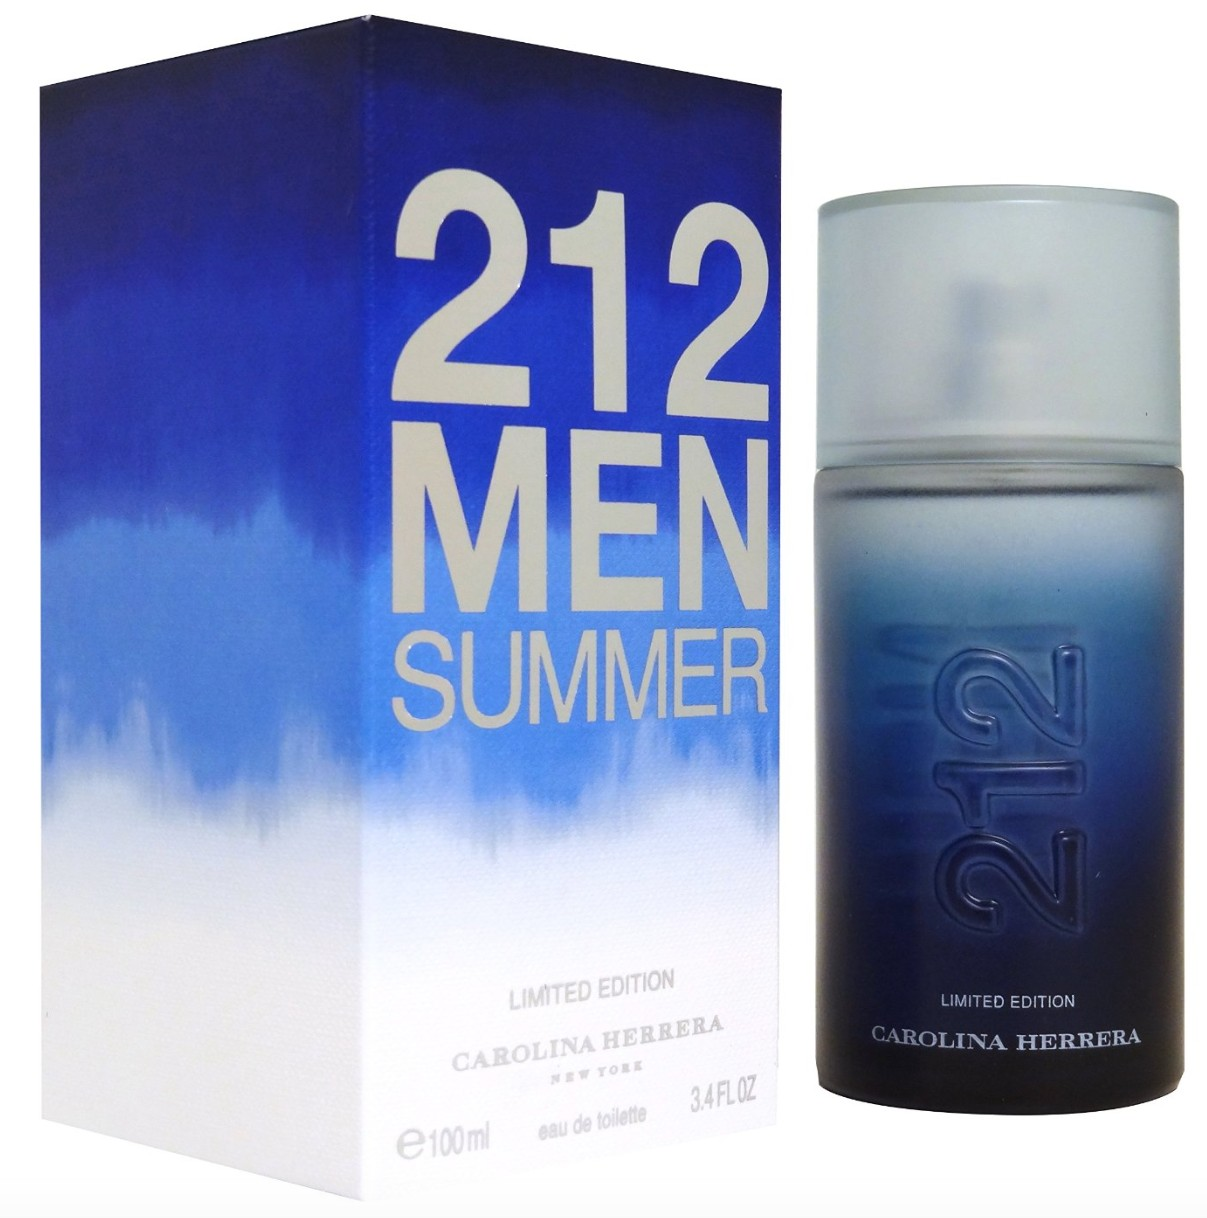 carolina herrera 212 men summer